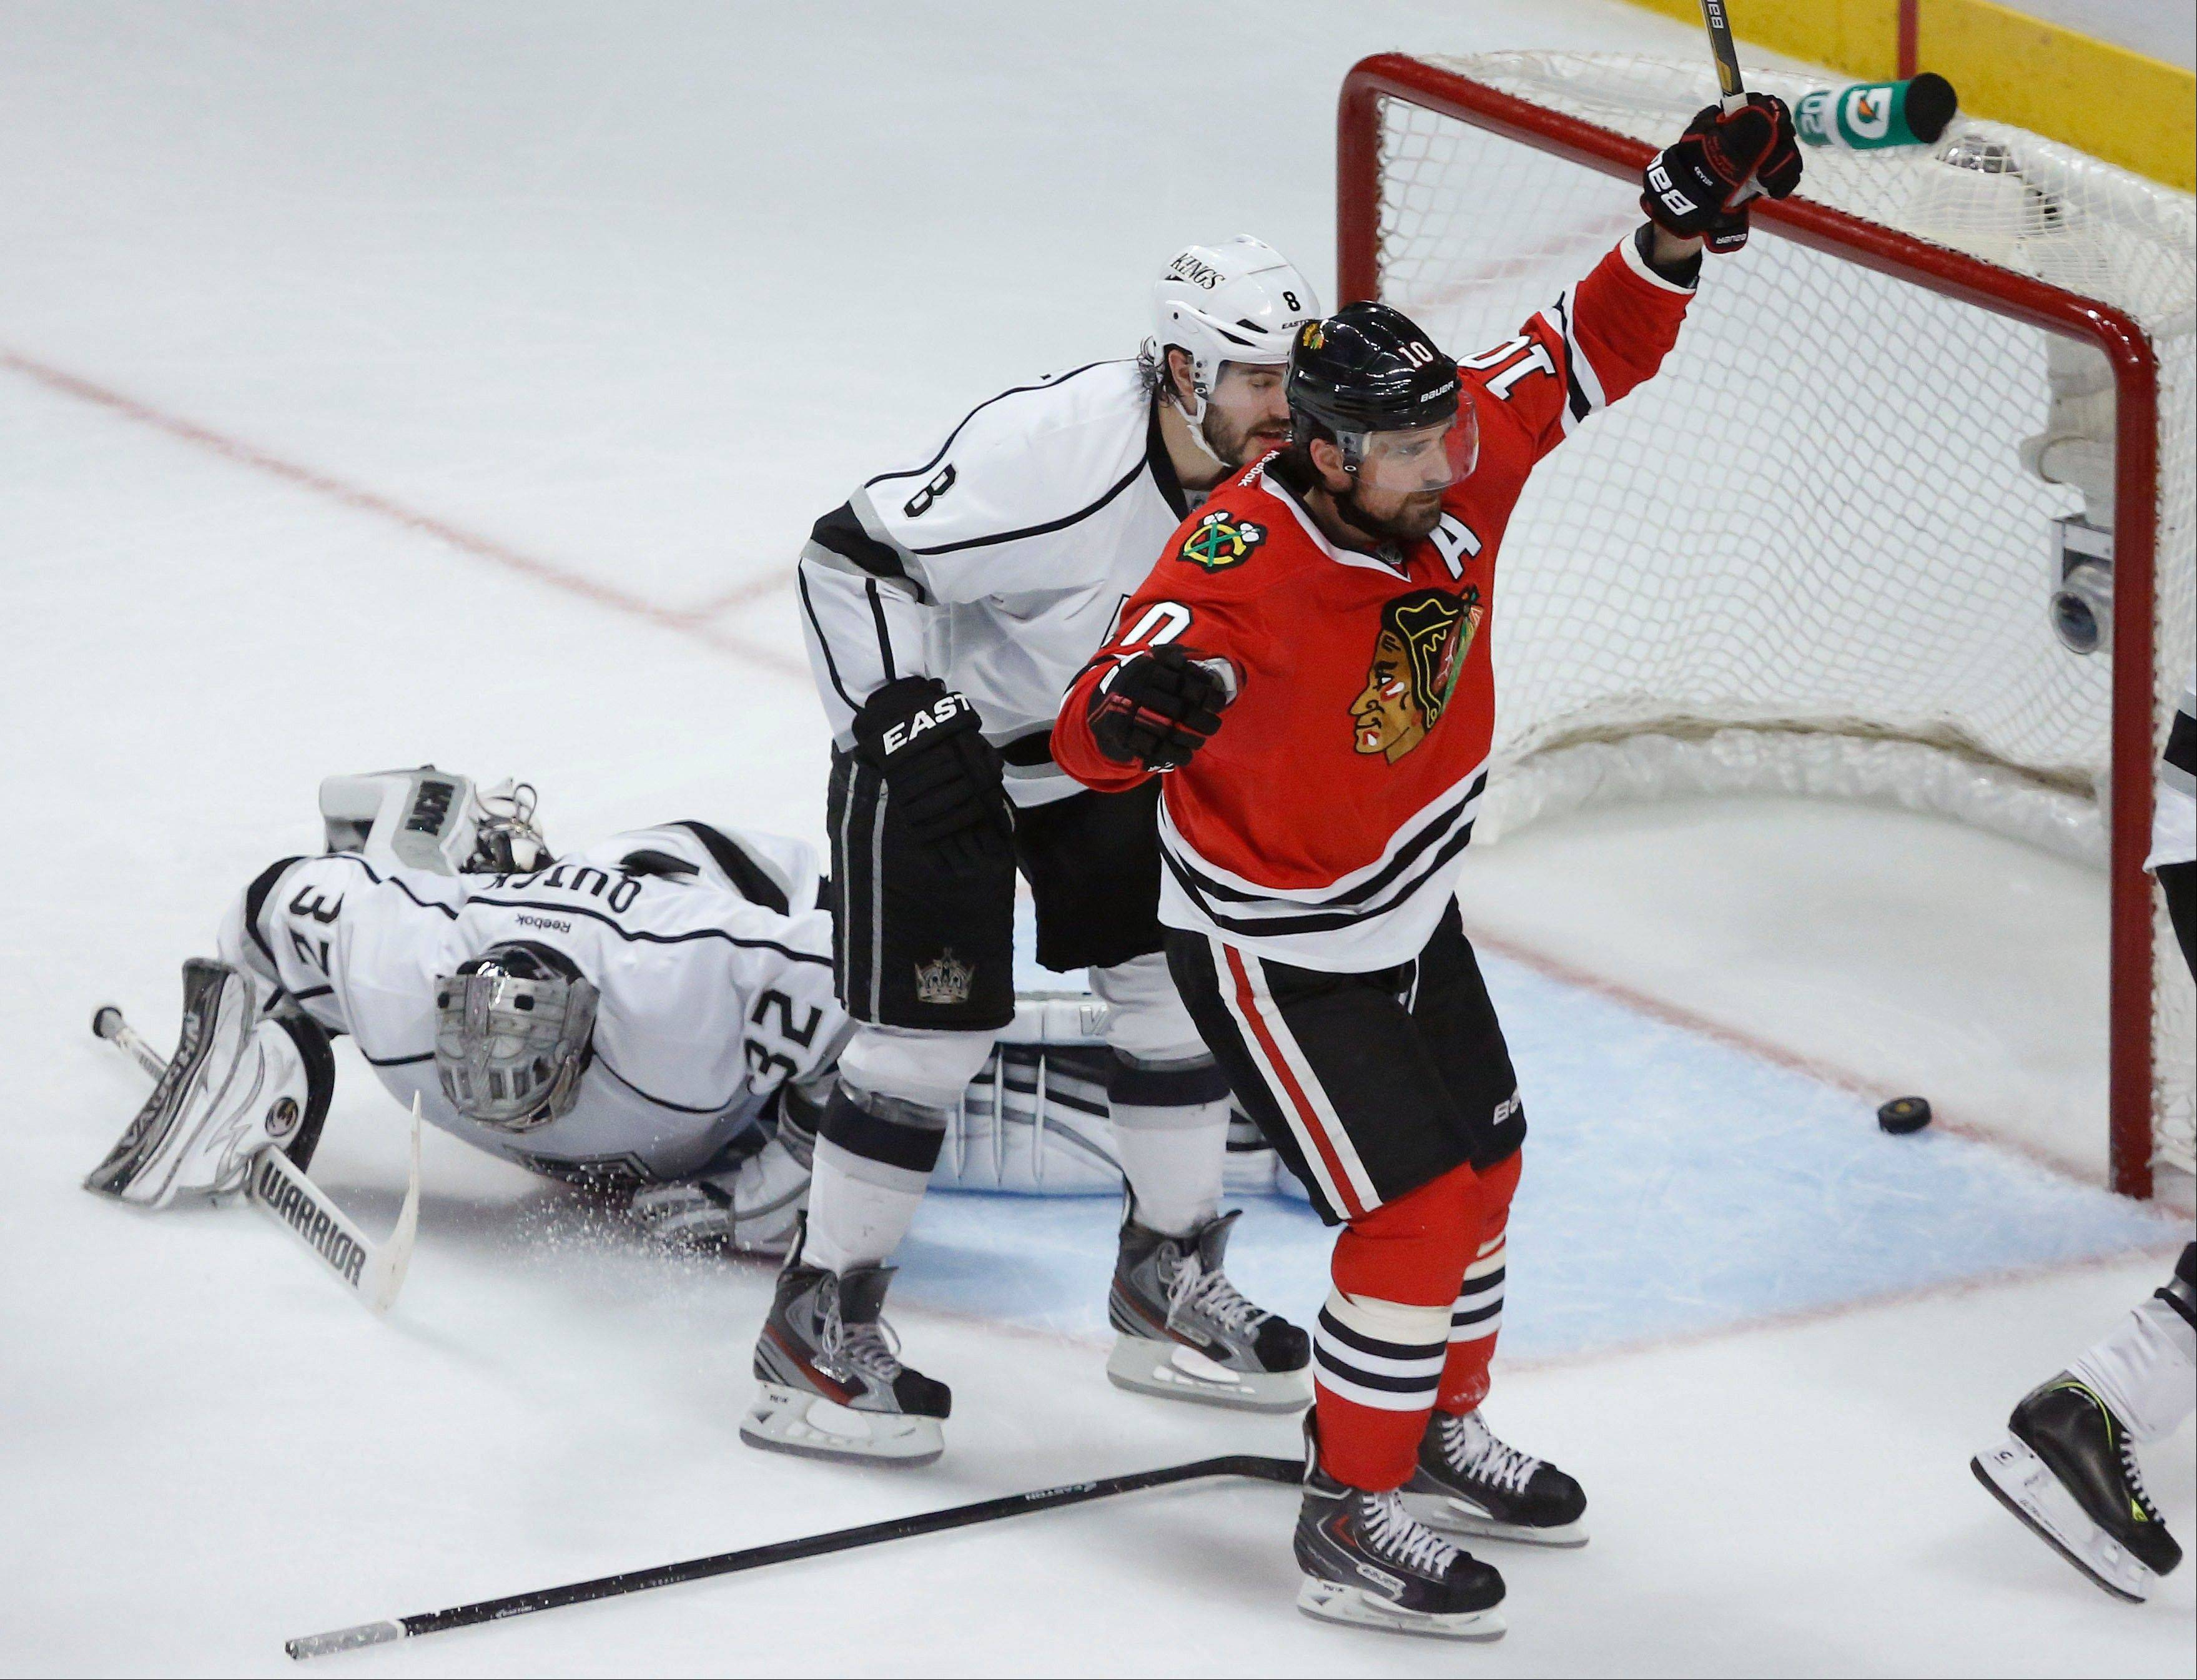 Blackhawks center Patrick Sharp (10) reacts after scoring a goal against Los Angeles Kings goalie Jonathan Quick (32) during the second period in Game 1 of the NHL hockey Stanley Cup Western Conference finals Saturday, June 1, 2013, in Chicago.